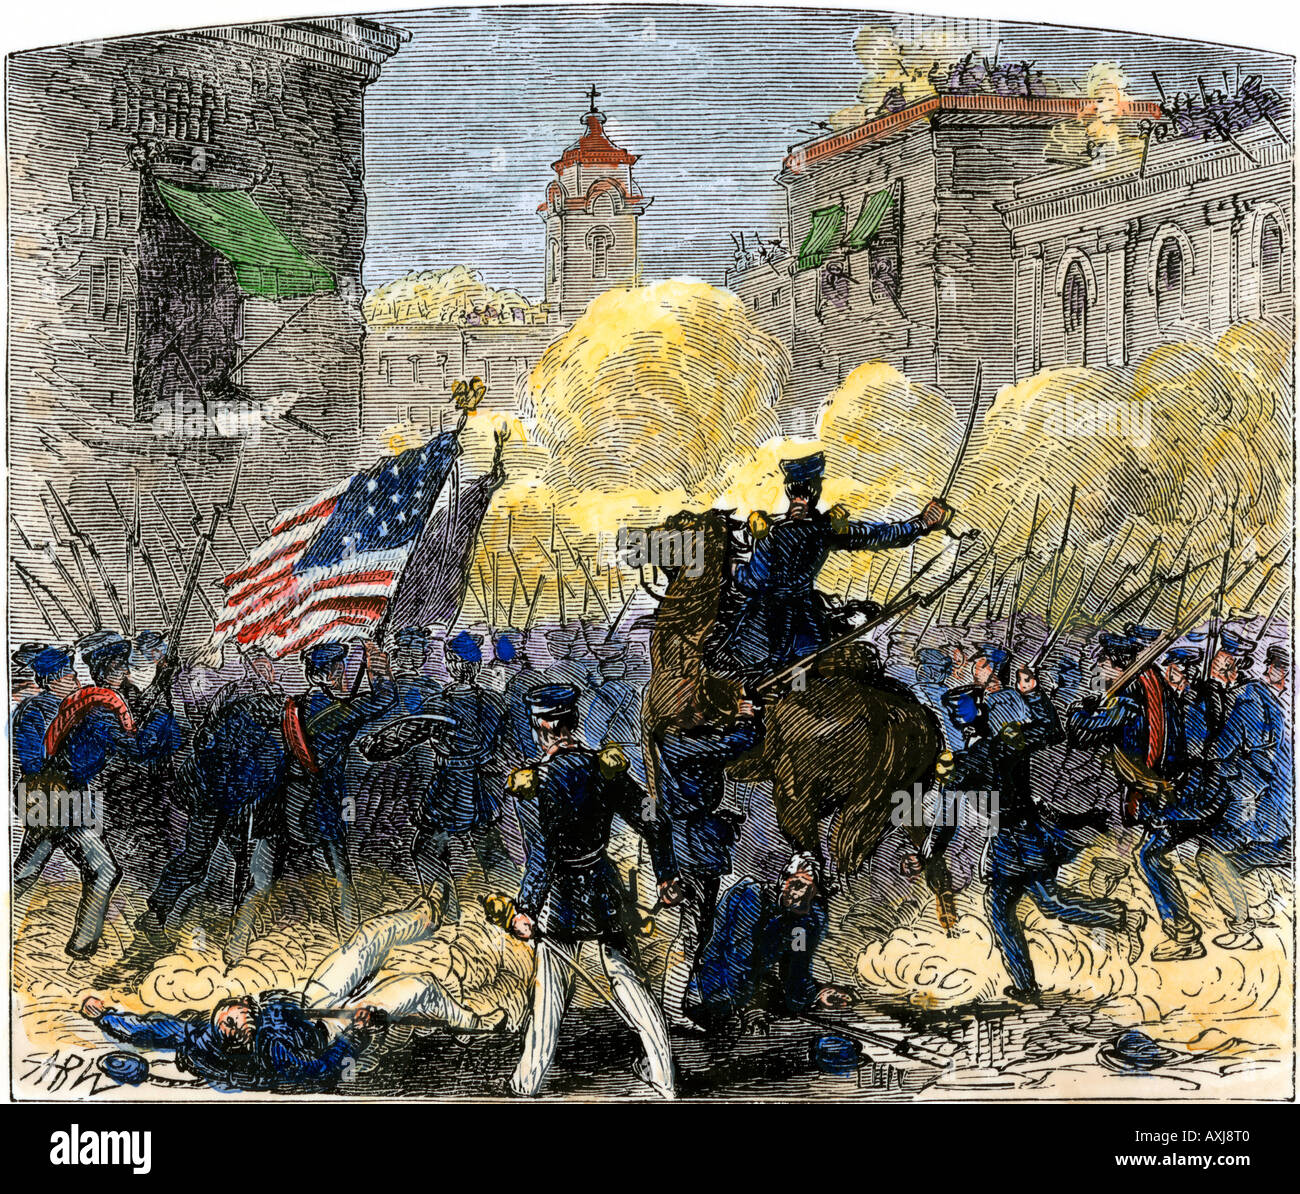 General Zachary Taylor attacking Monterey Mexico during the US Mexican War 1846. Hand-colored woodcut - Stock Image